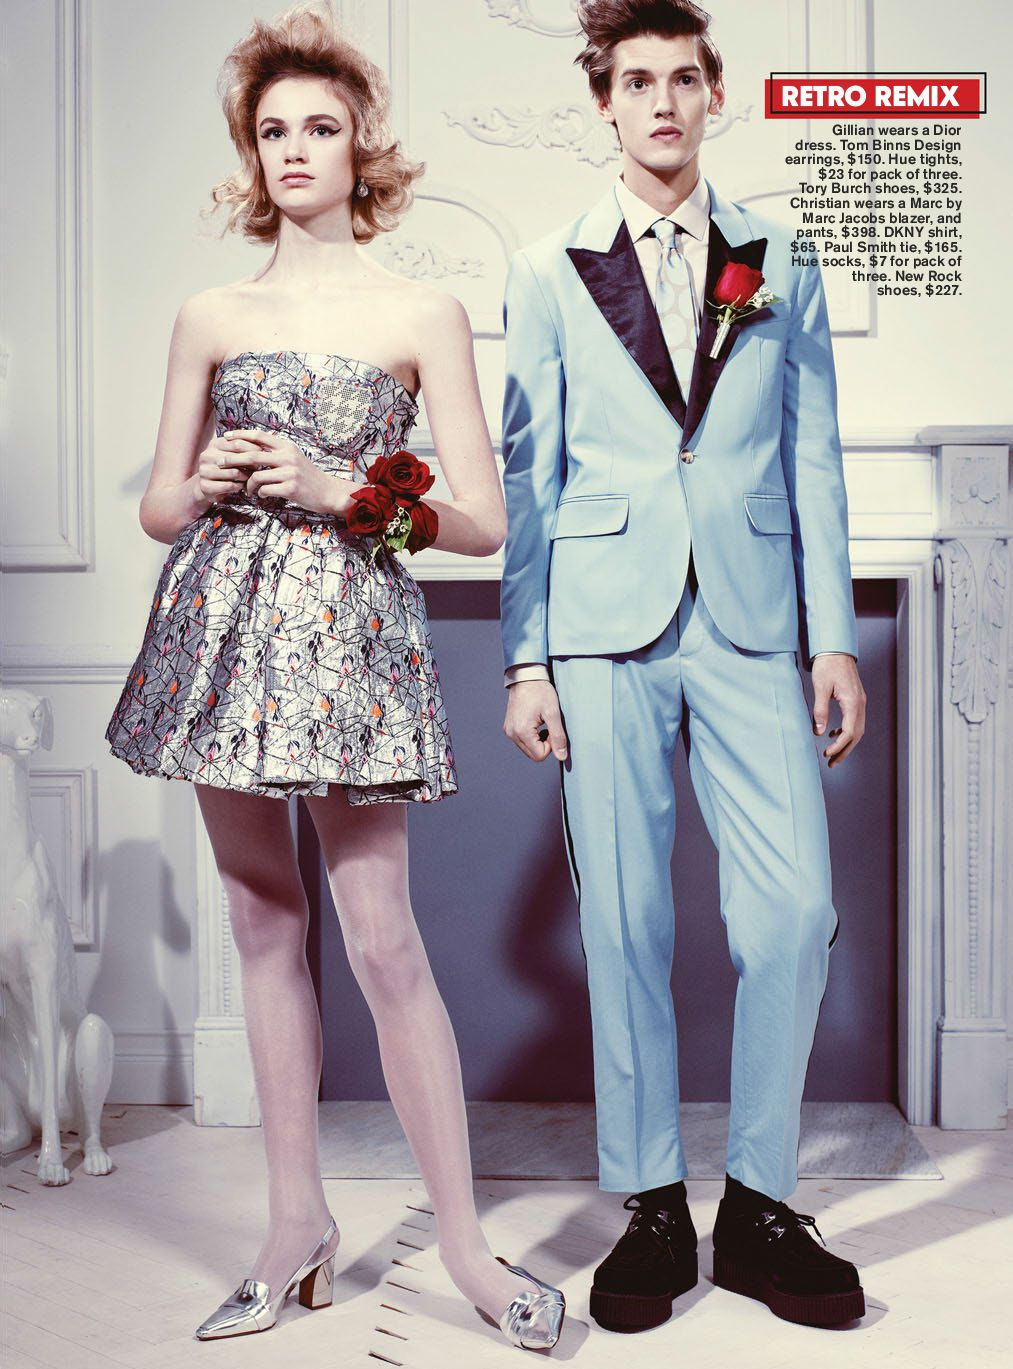 Teen vogue showing Dior for prom | Prom editorial | Pinterest | Dior ...